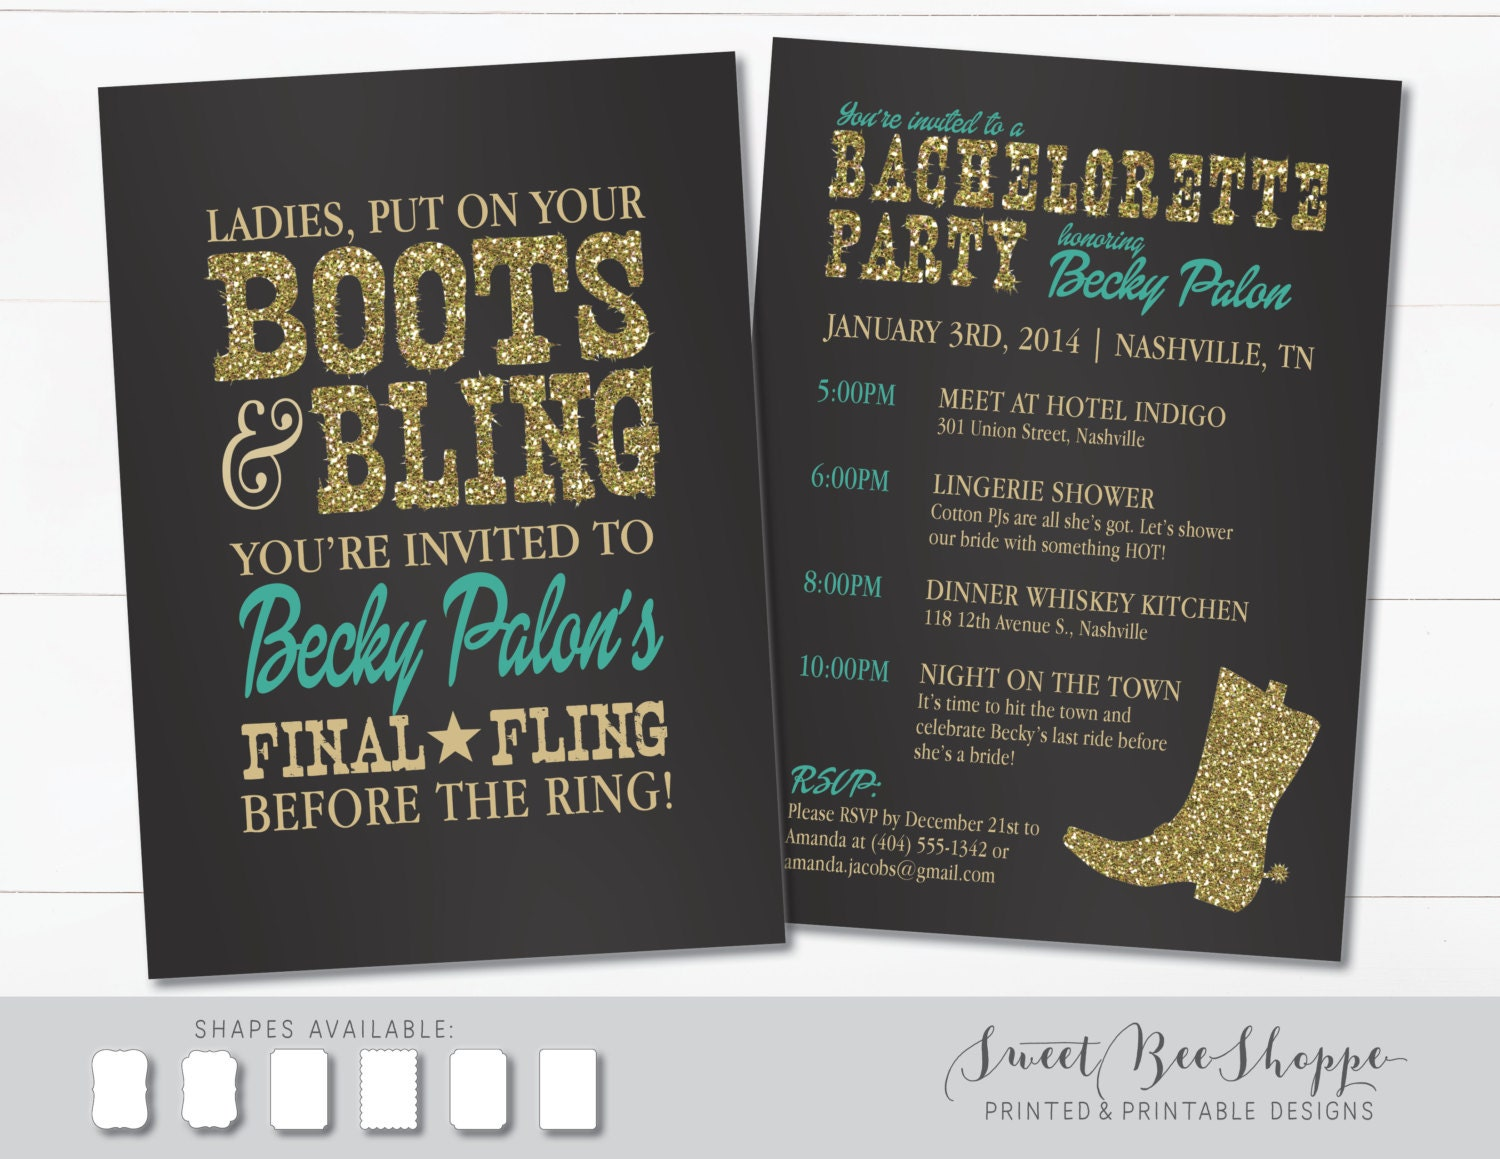 Country Western Bachelorette Party Invitation Boots & Bling